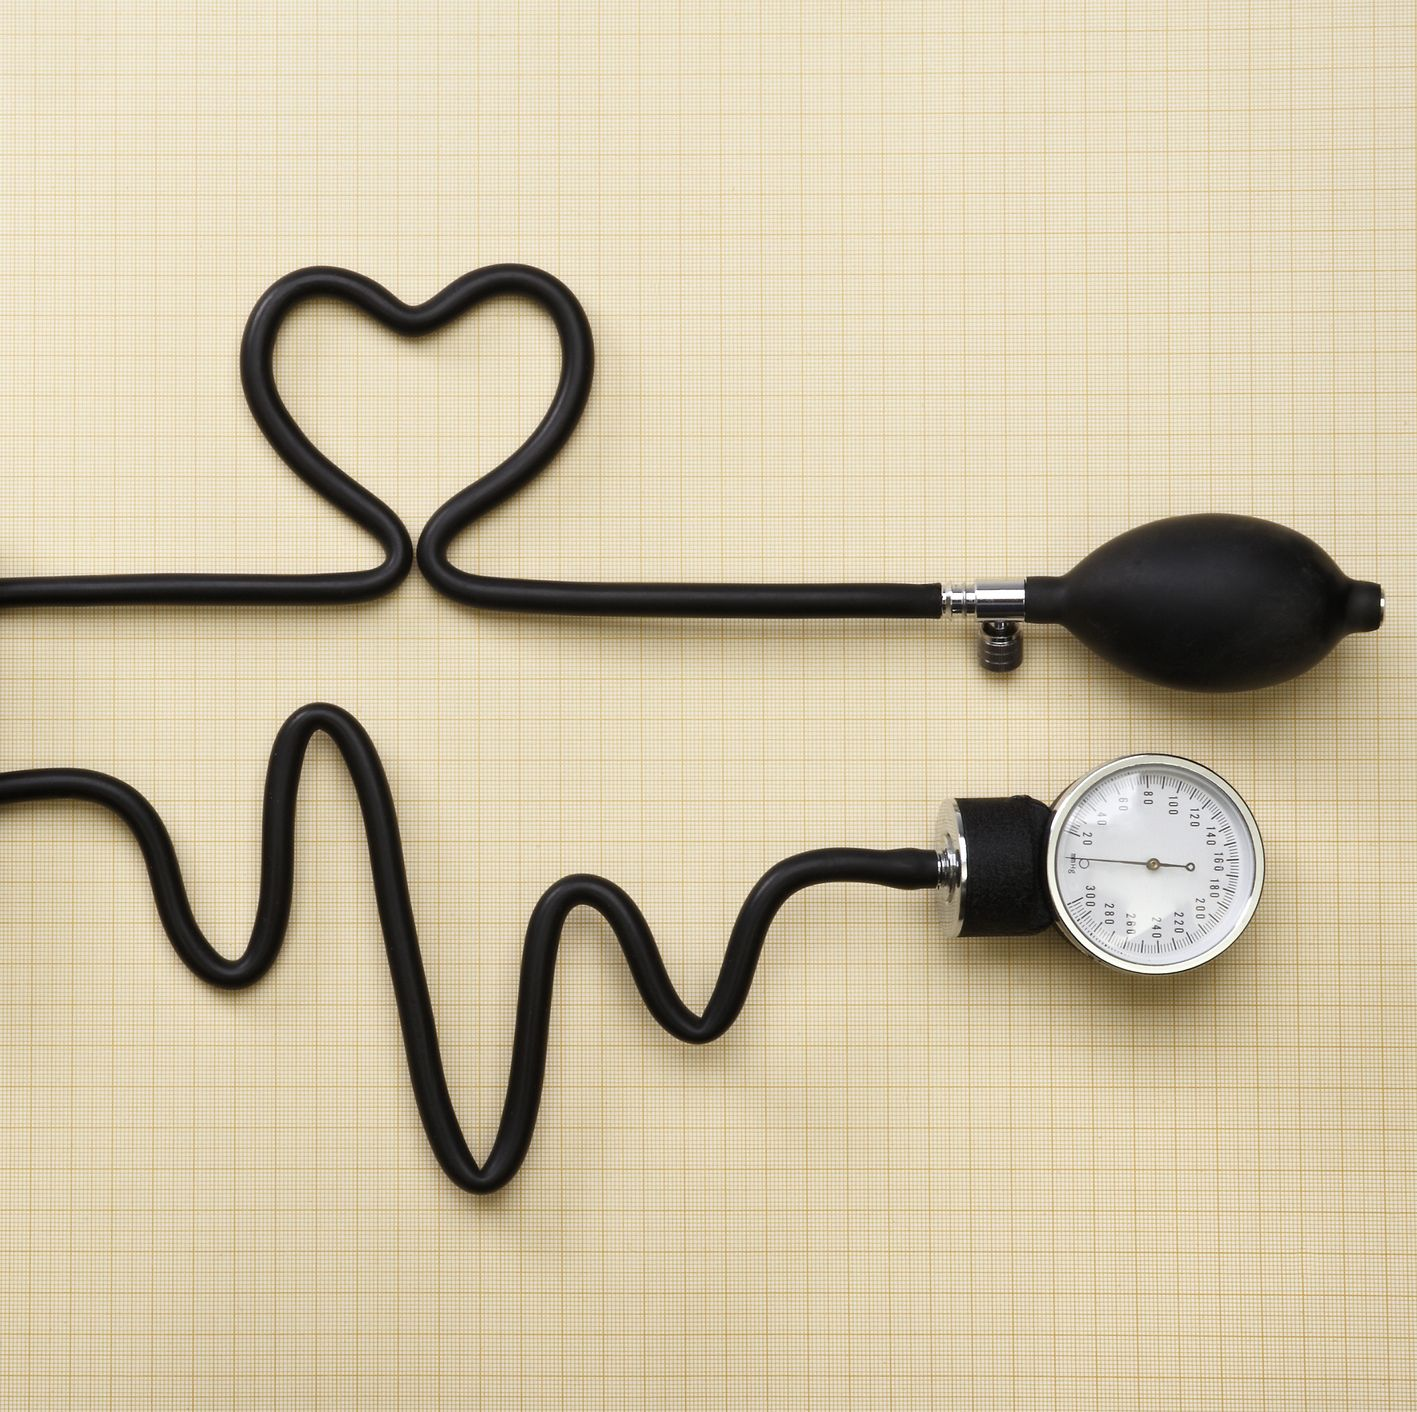 A heart and heartbeat done with a sphygmomanometer